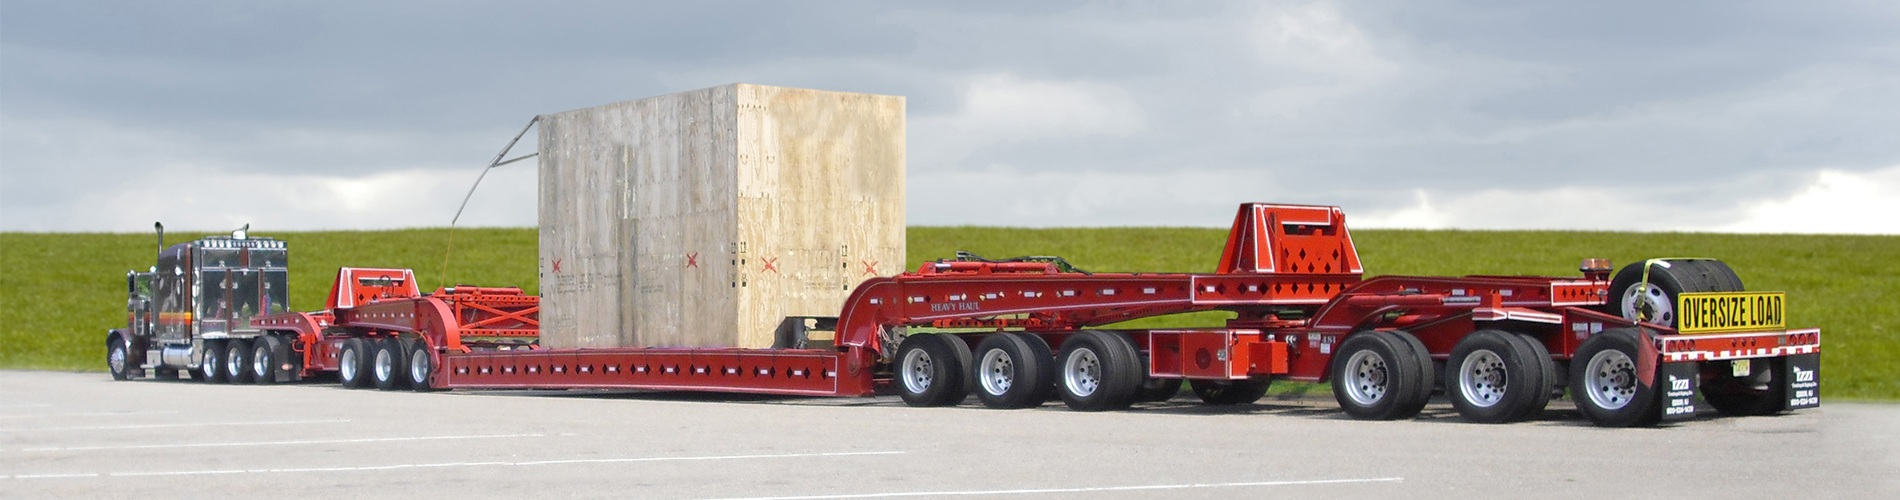 Heavy Haul experts with oversized transportation wide loads trucking company in New Jersey and New York